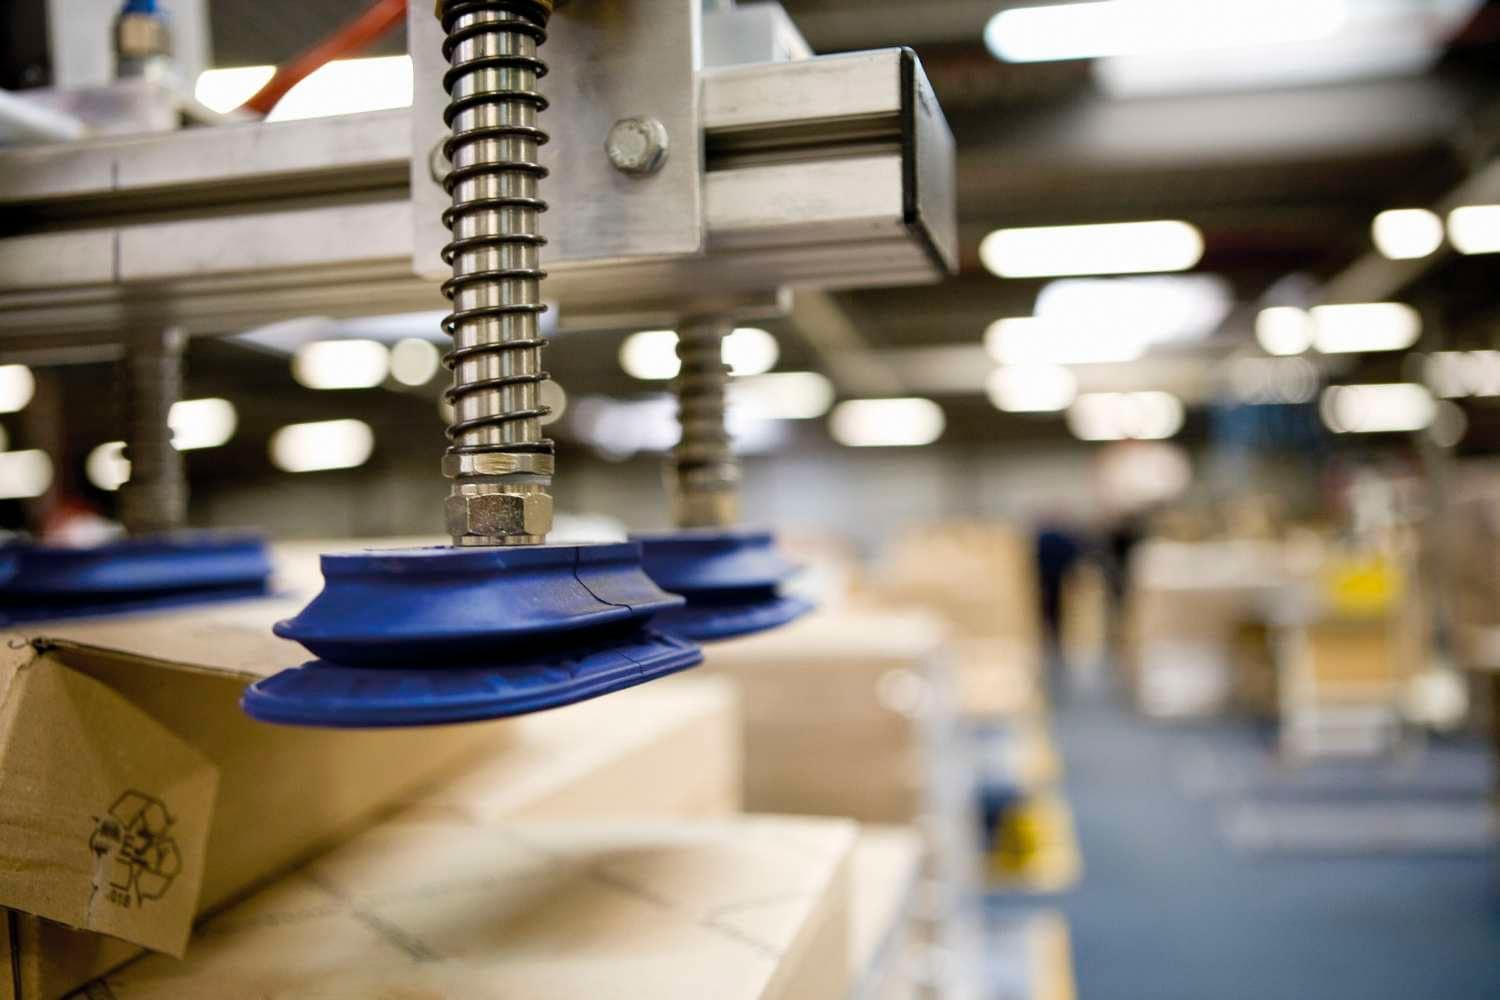 Pneumatic robot arm lifts boxes in a warehouse